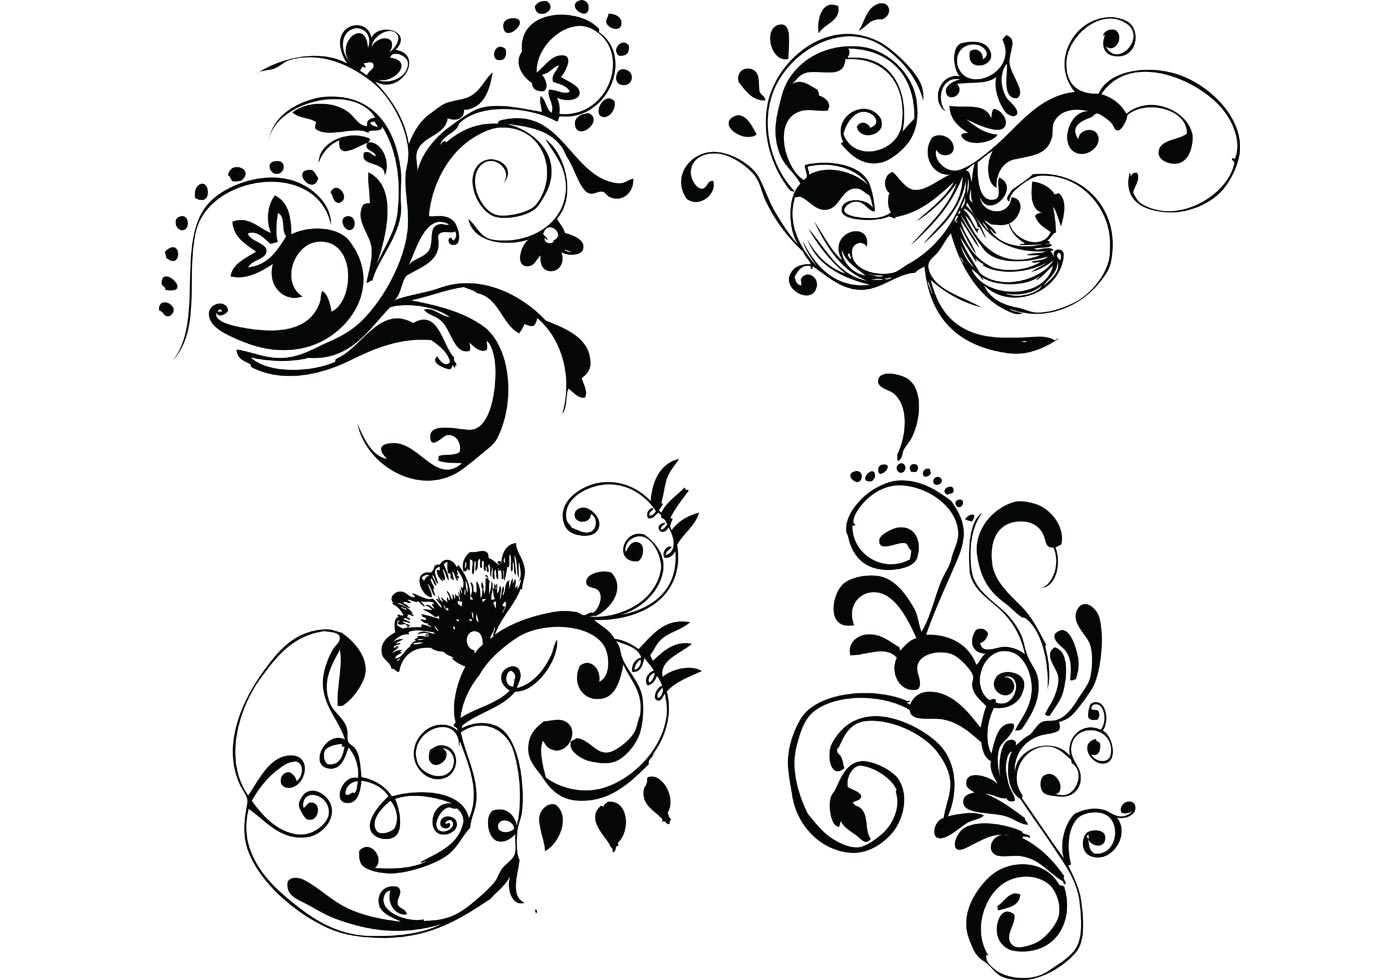 Art Design On Line : Hand drawn floral free vector images download